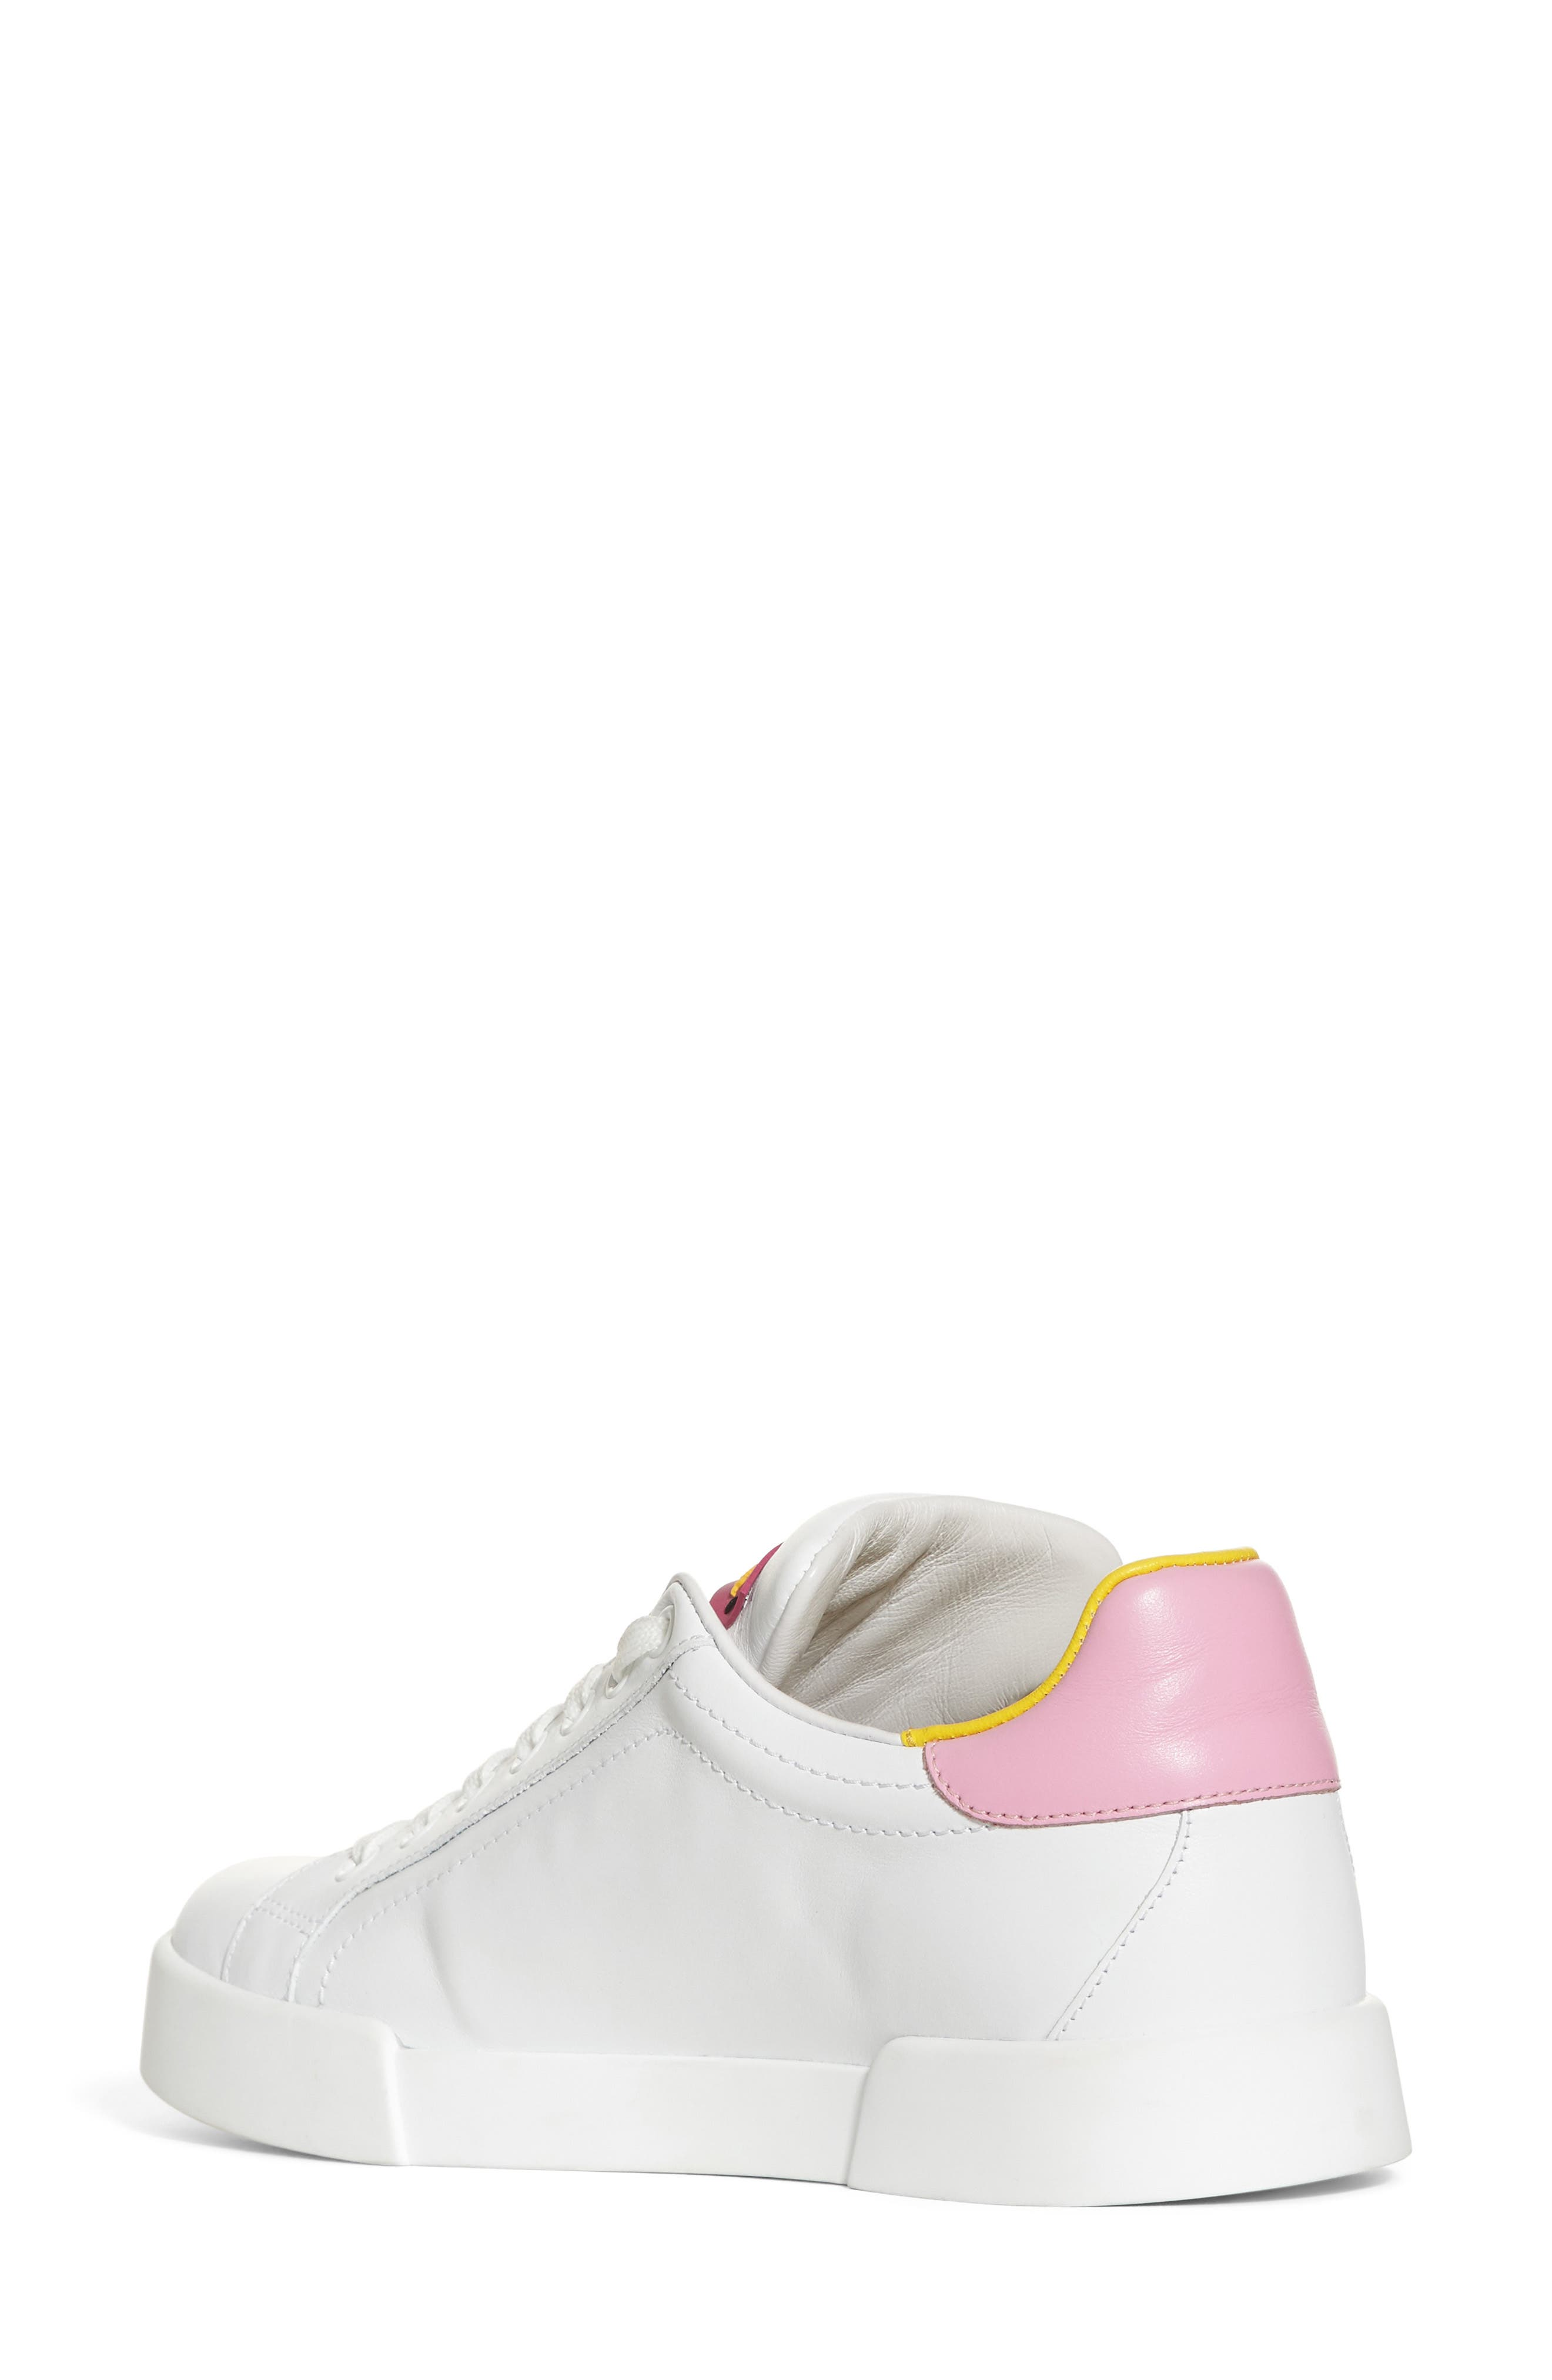 Lipstick Sneaker,                             Alternate thumbnail 2, color,                             100